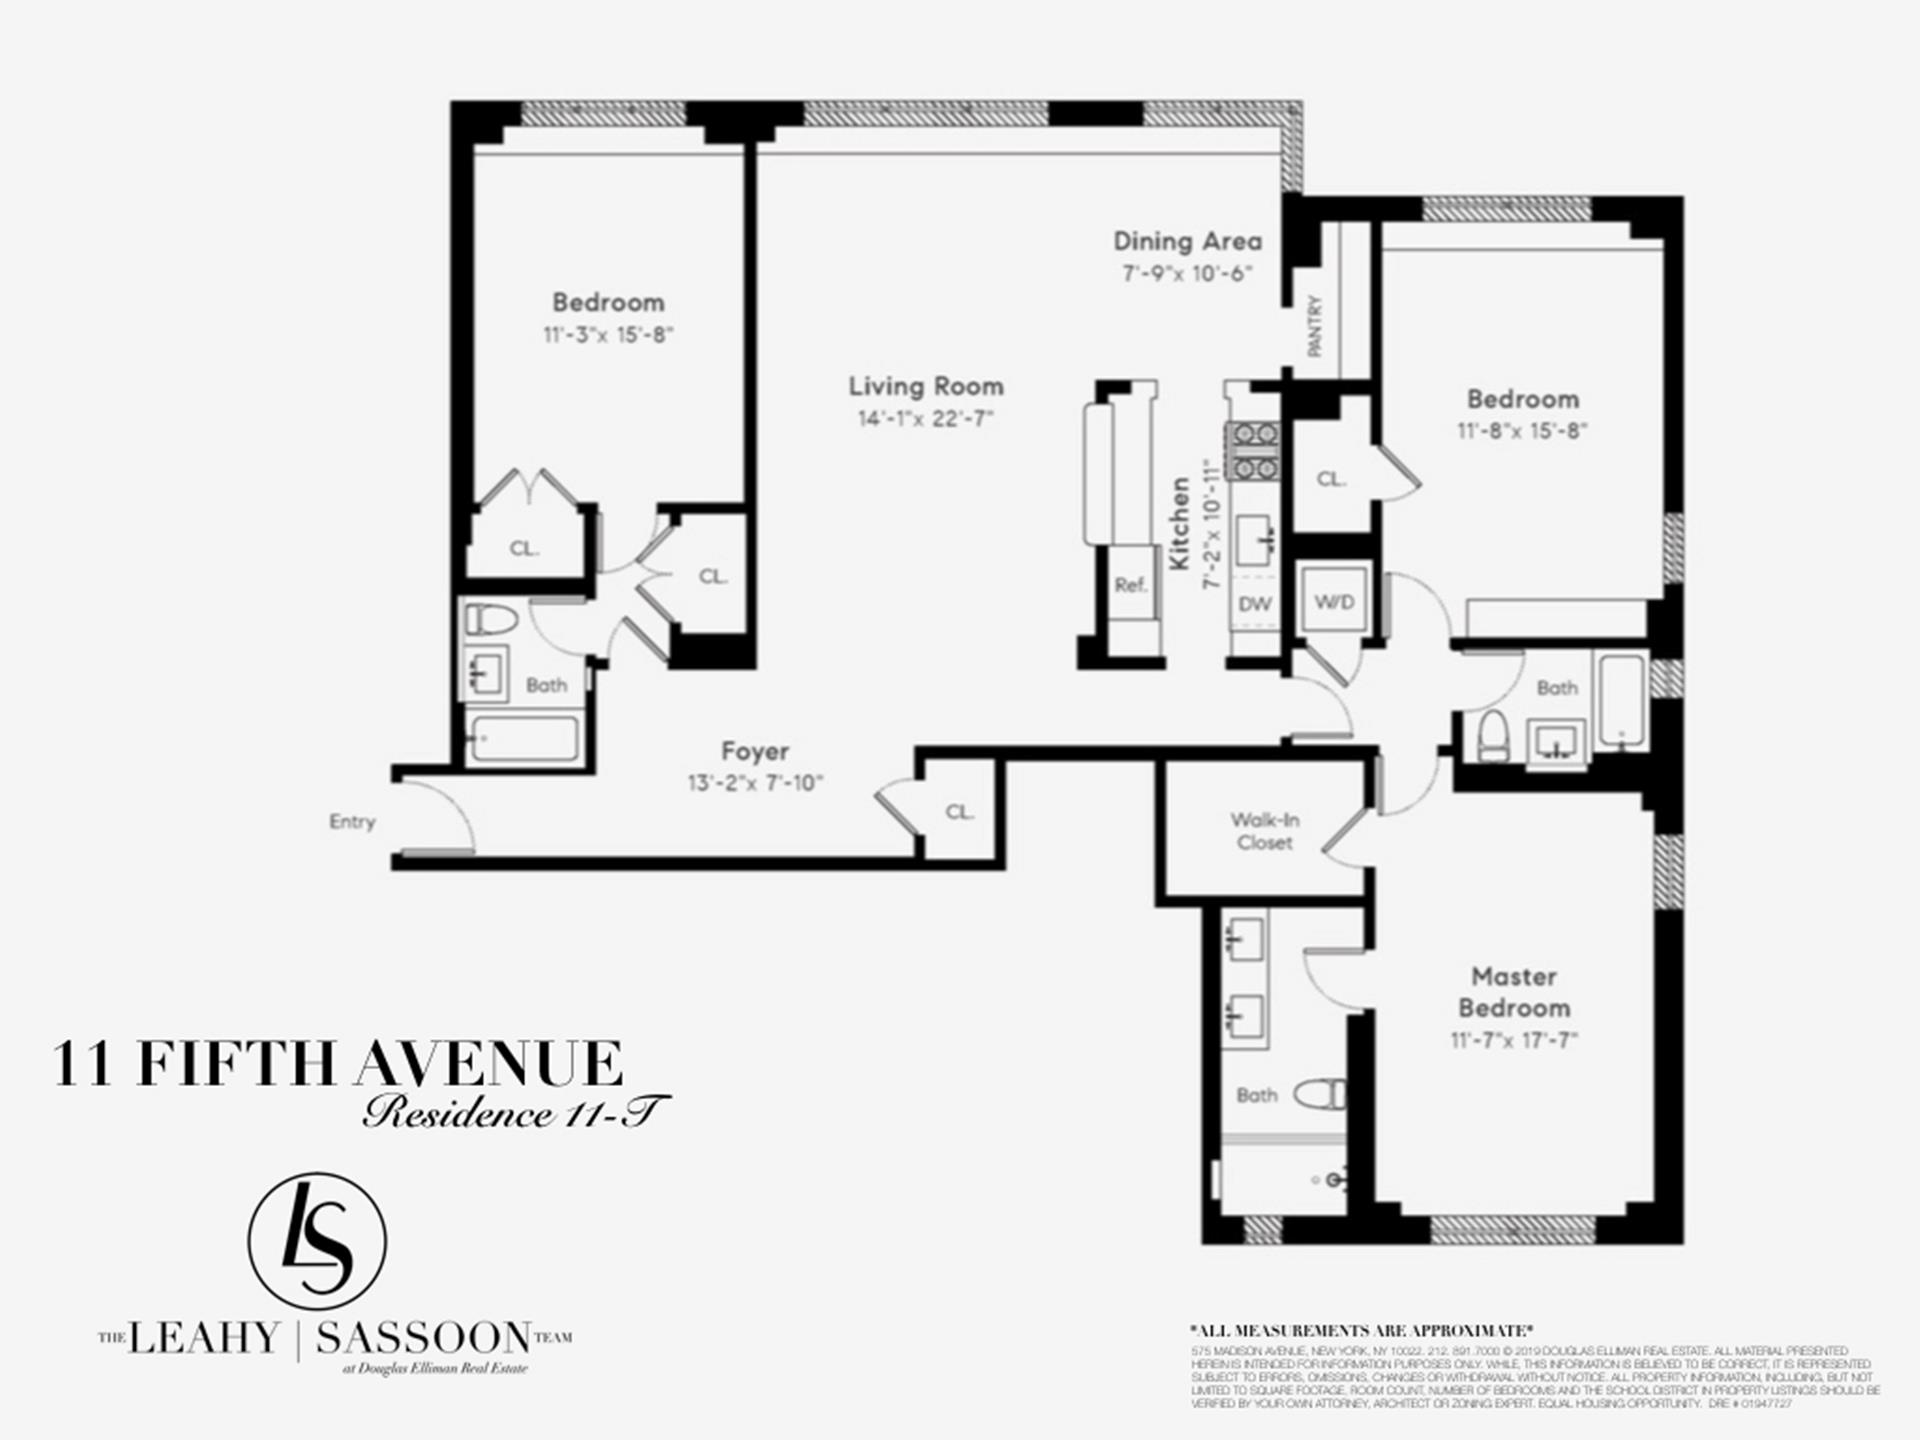 Floor plan of The Brevoort, 11 Fifth Avenue, 11T - Greenwich Village, New York